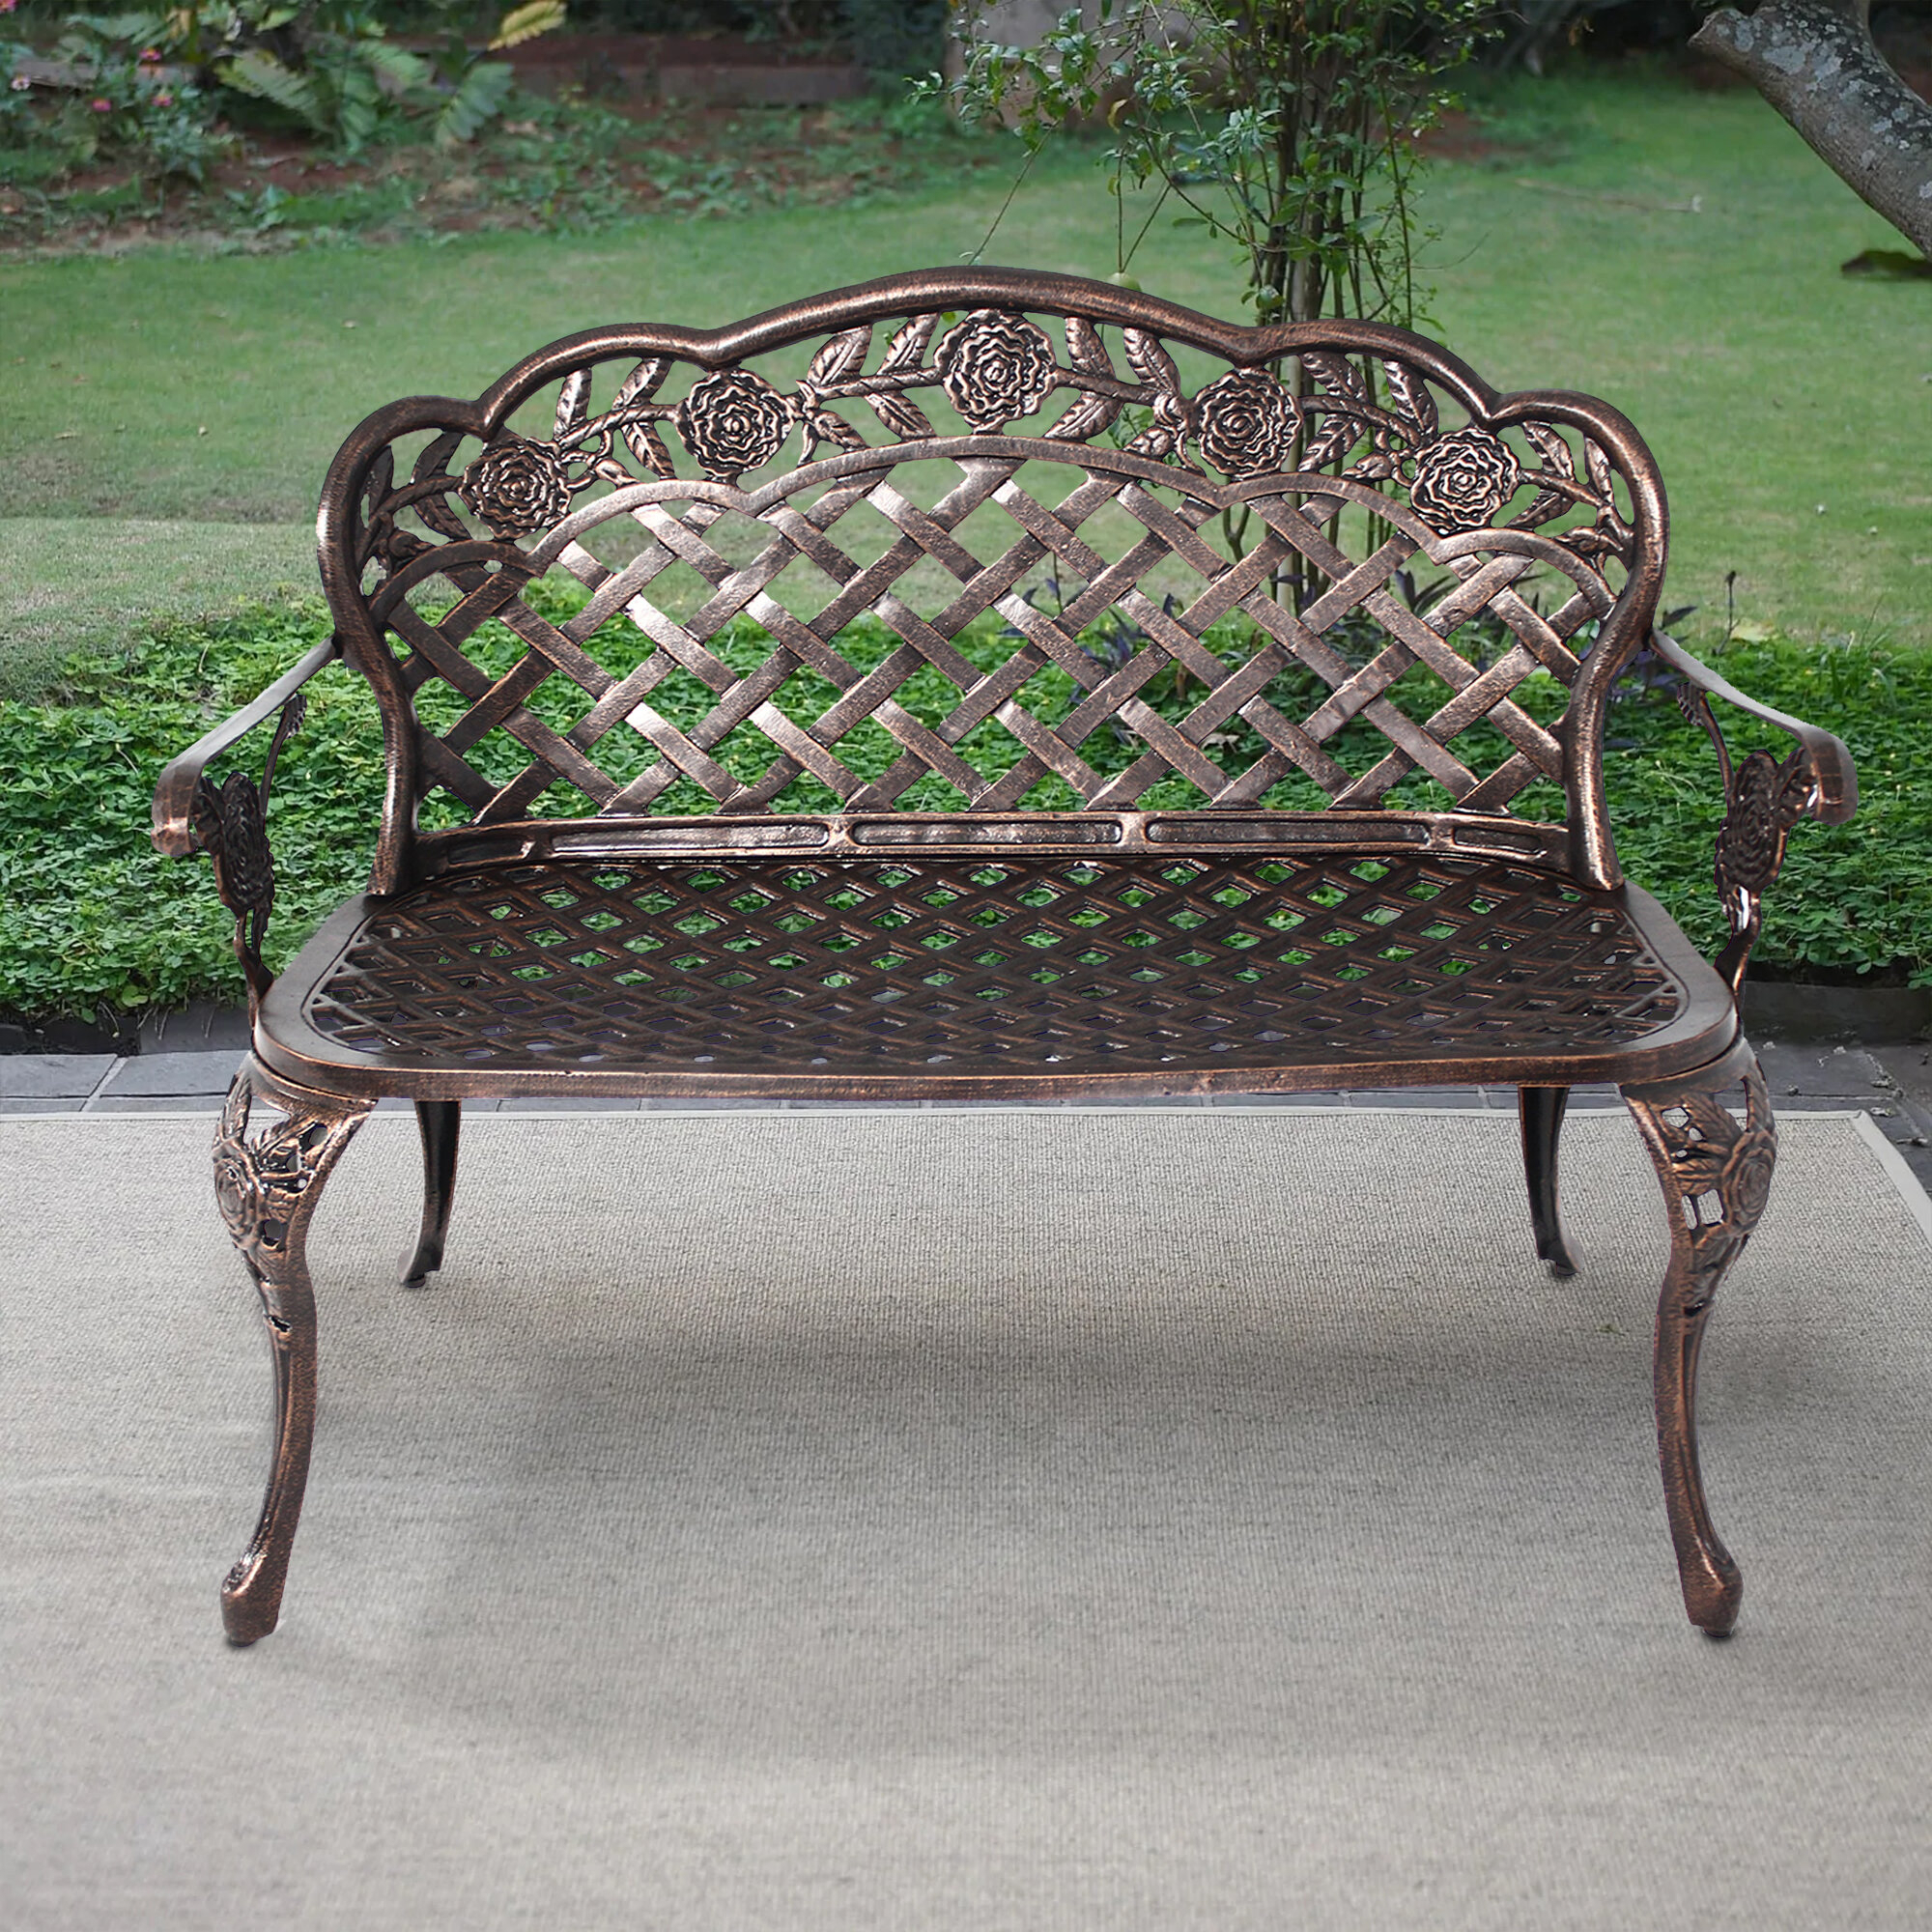 Hailey Cast Aluminum Garden Bench Within Ismenia Checkered Outdoor Cast Aluminum Patio Garden Benches (View 3 of 25)